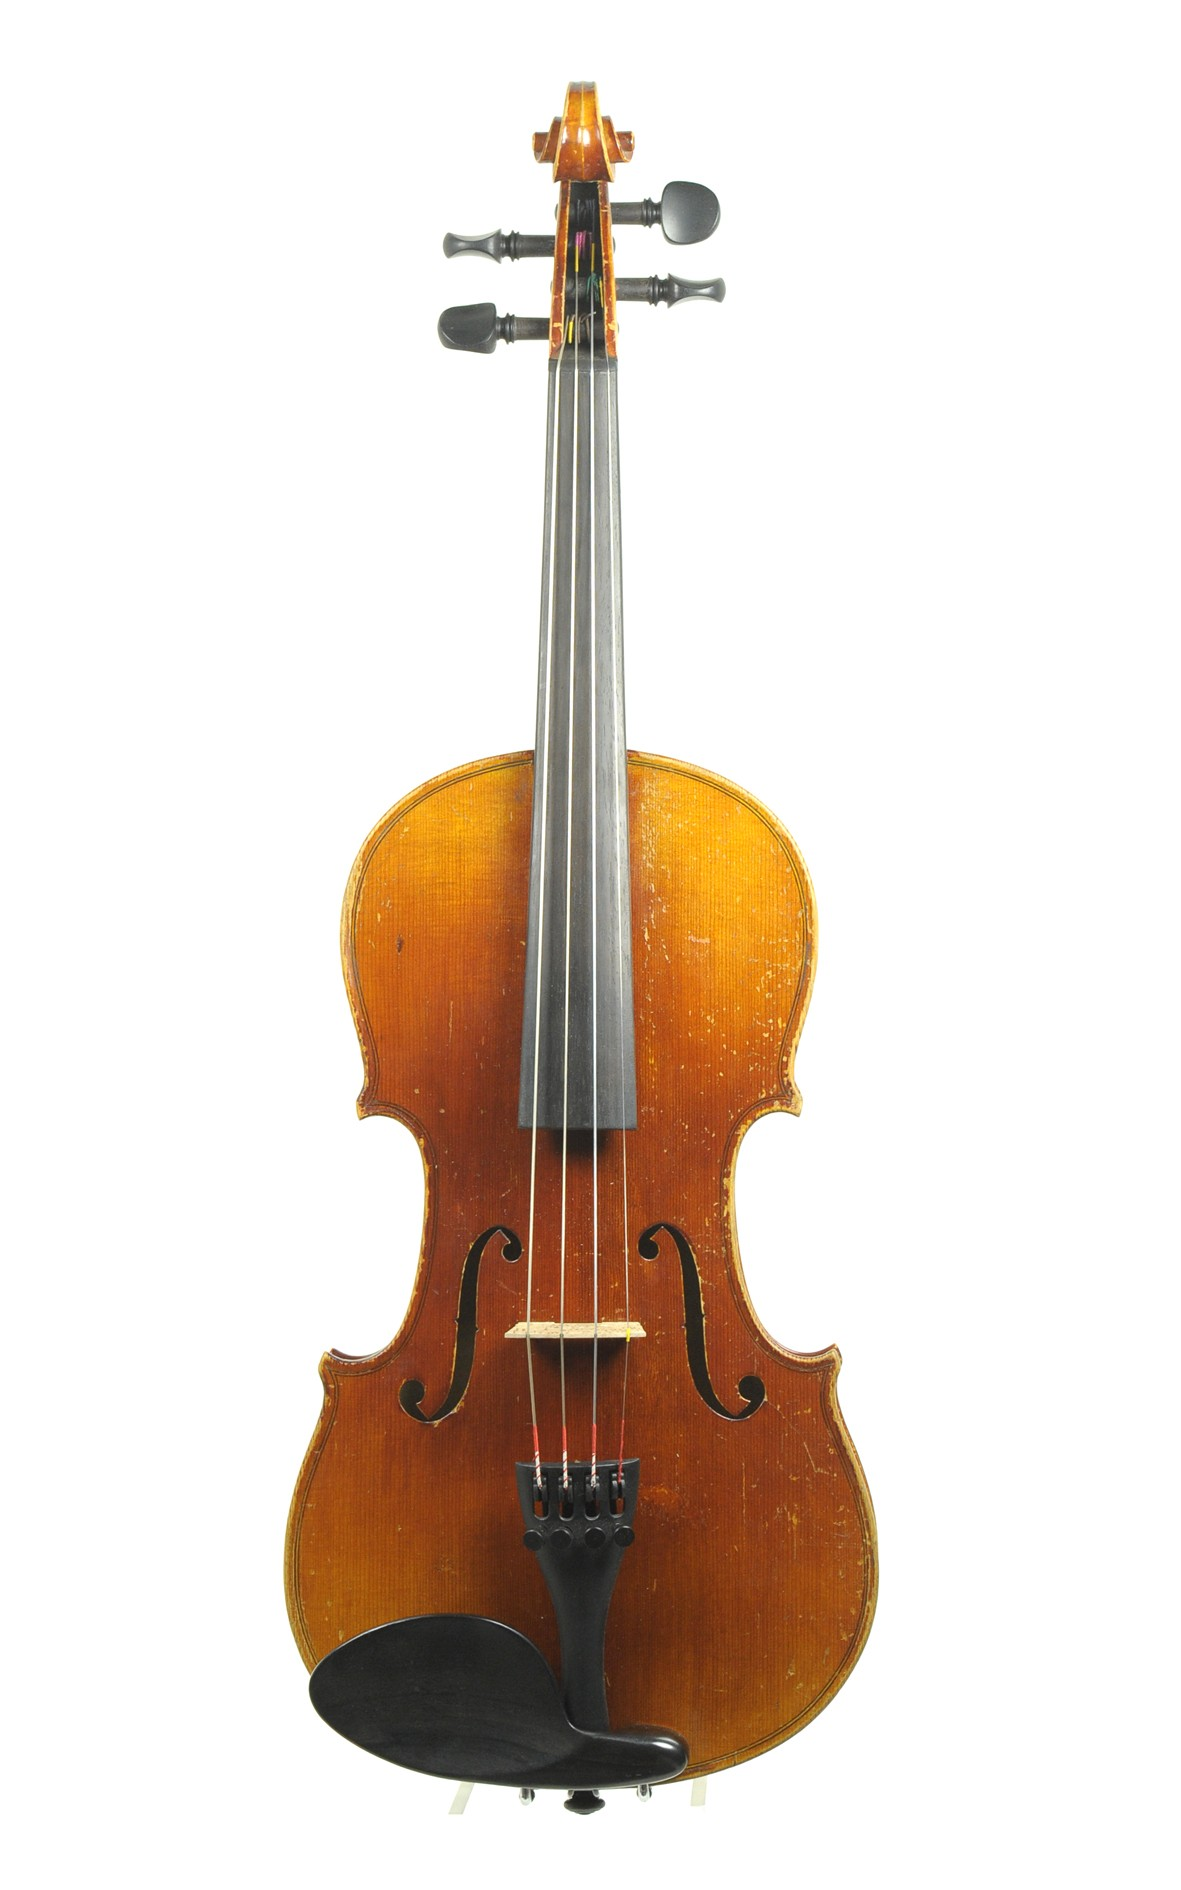 Mittenwald 3/4 violin, approx. 1880 - top